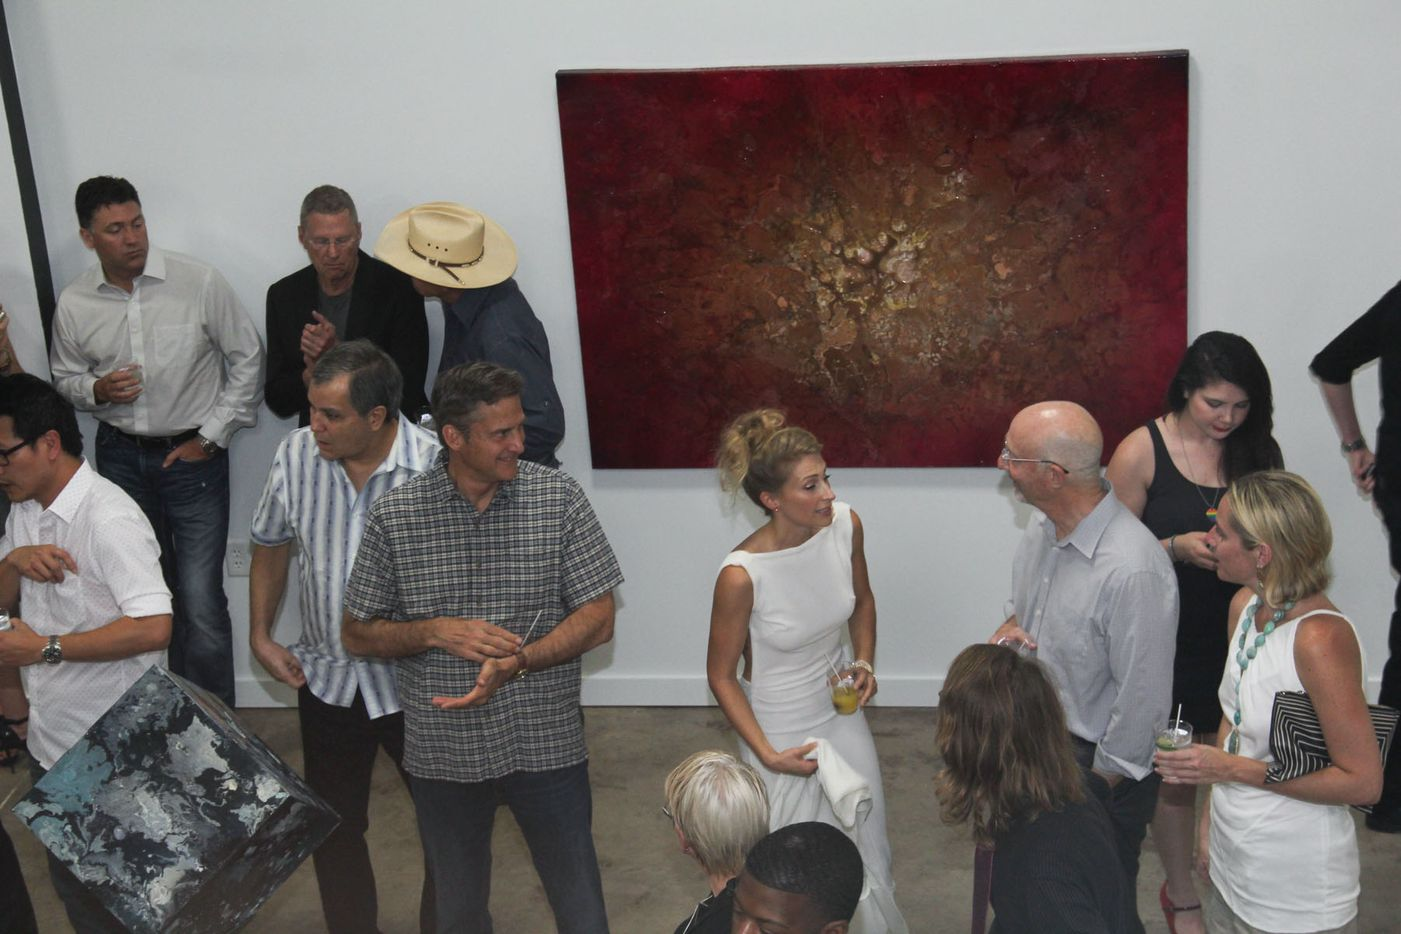 Euphoria is Toni Martin's first solo-exhibition. She has been working in Dallas for the past 10 years.